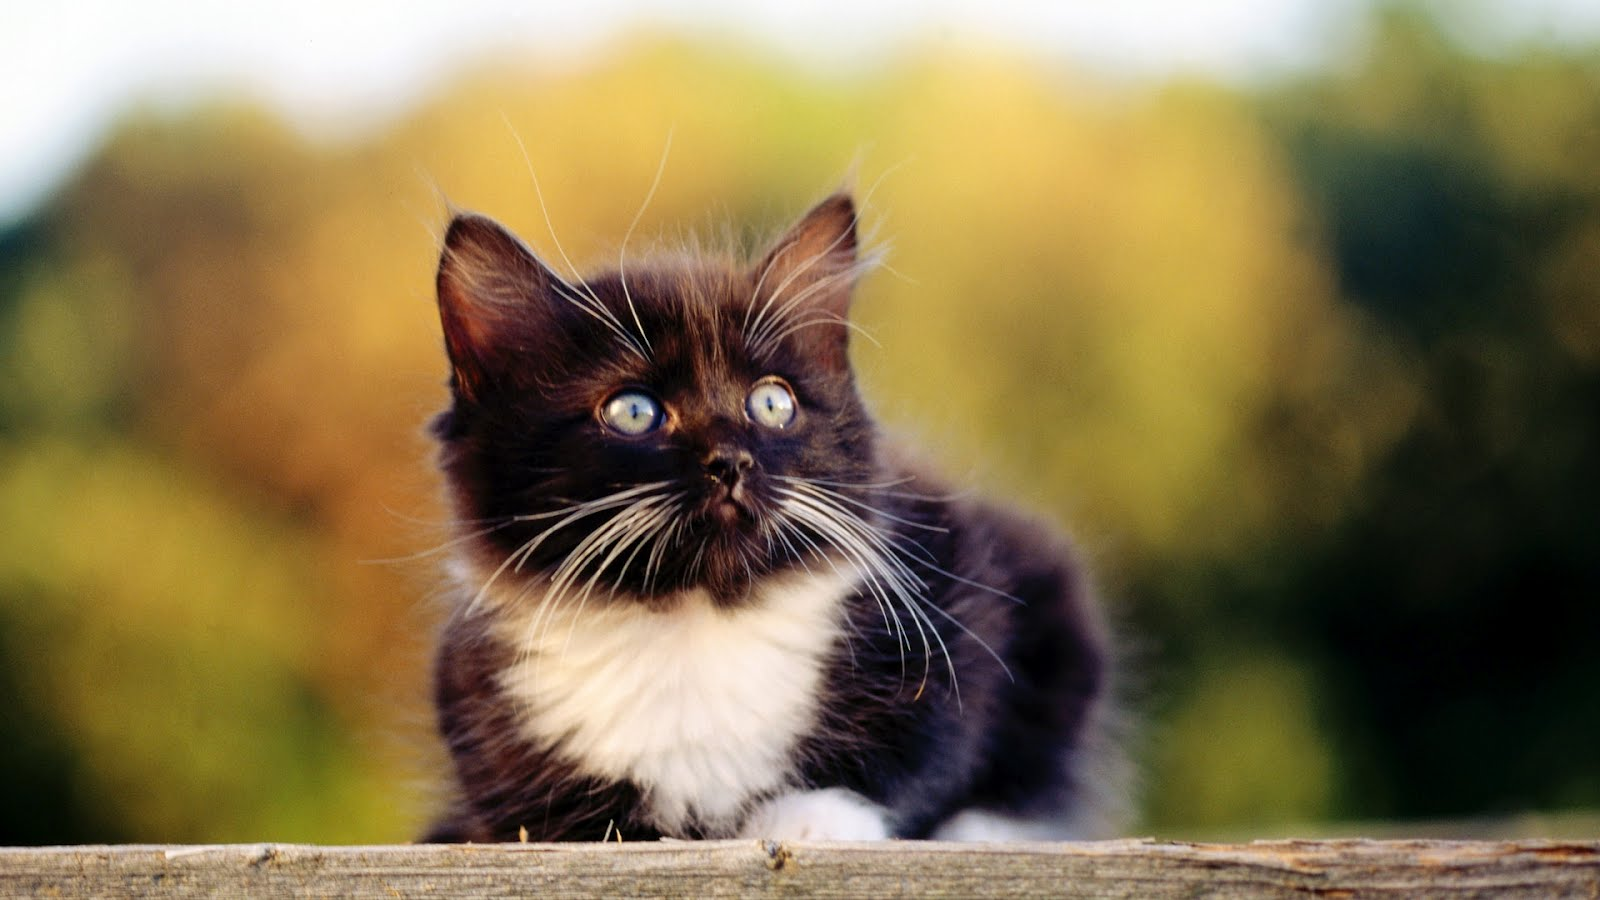 Animated Waterfalls Wallpapers Free Download Beautiful Cat Wallpapers